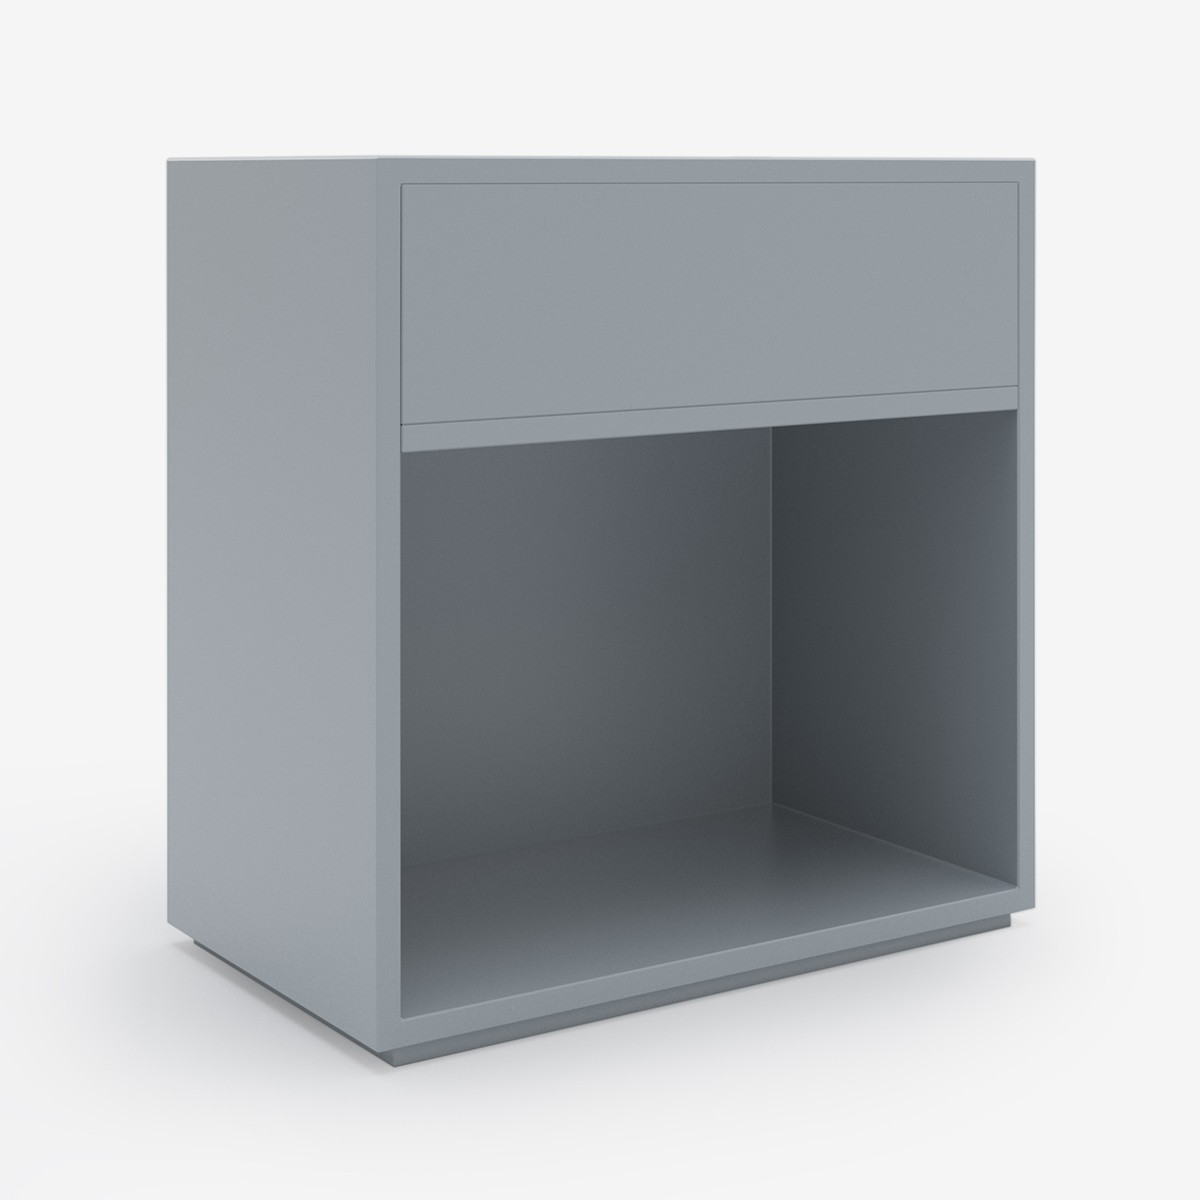 Open-Closed Bedside Table in Soft Grey Lacquer - W60 x D40 x H60 cm